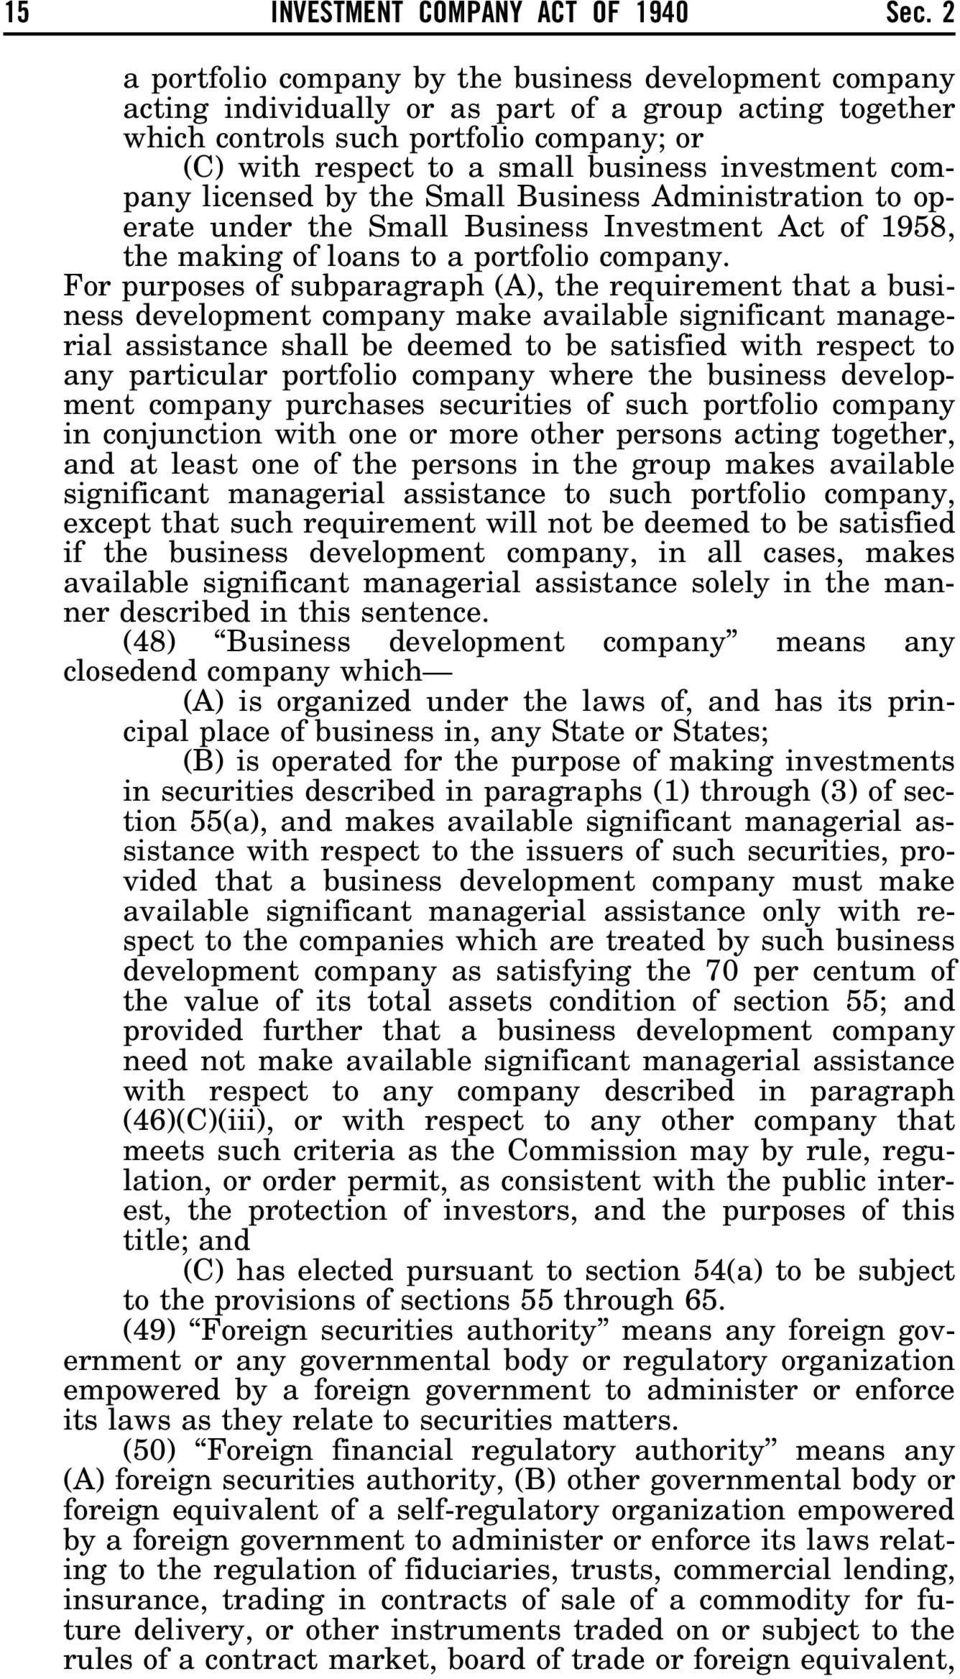 investment company licensed by the Small Business Administration to operate under the Small Business Investment Act of 1958, the making of loans to a portfolio company.